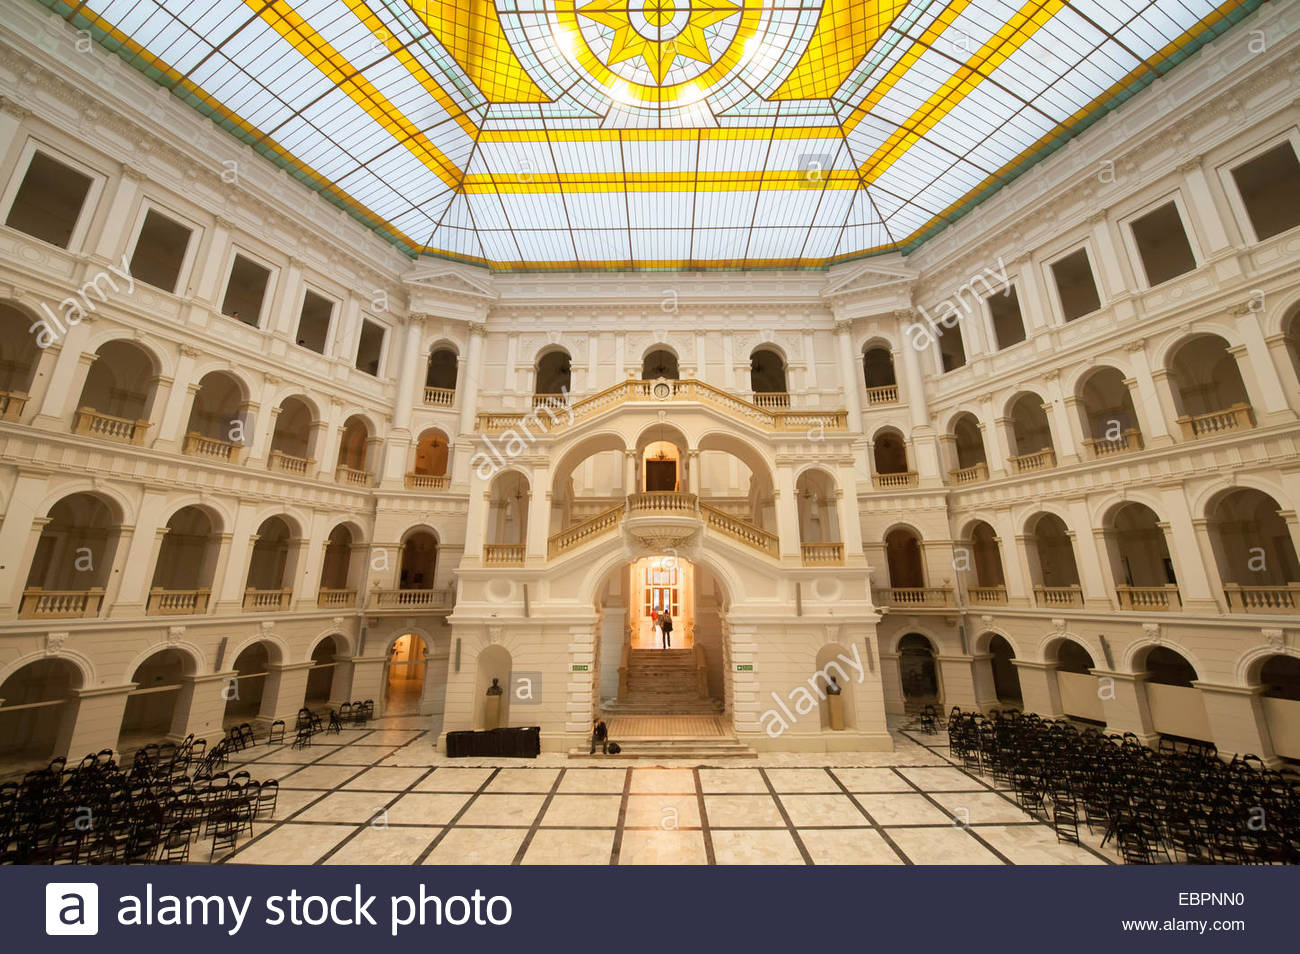 Interior auditorium with arched multi-tiered levels and glass ceiling, Warsaw  Technical University,